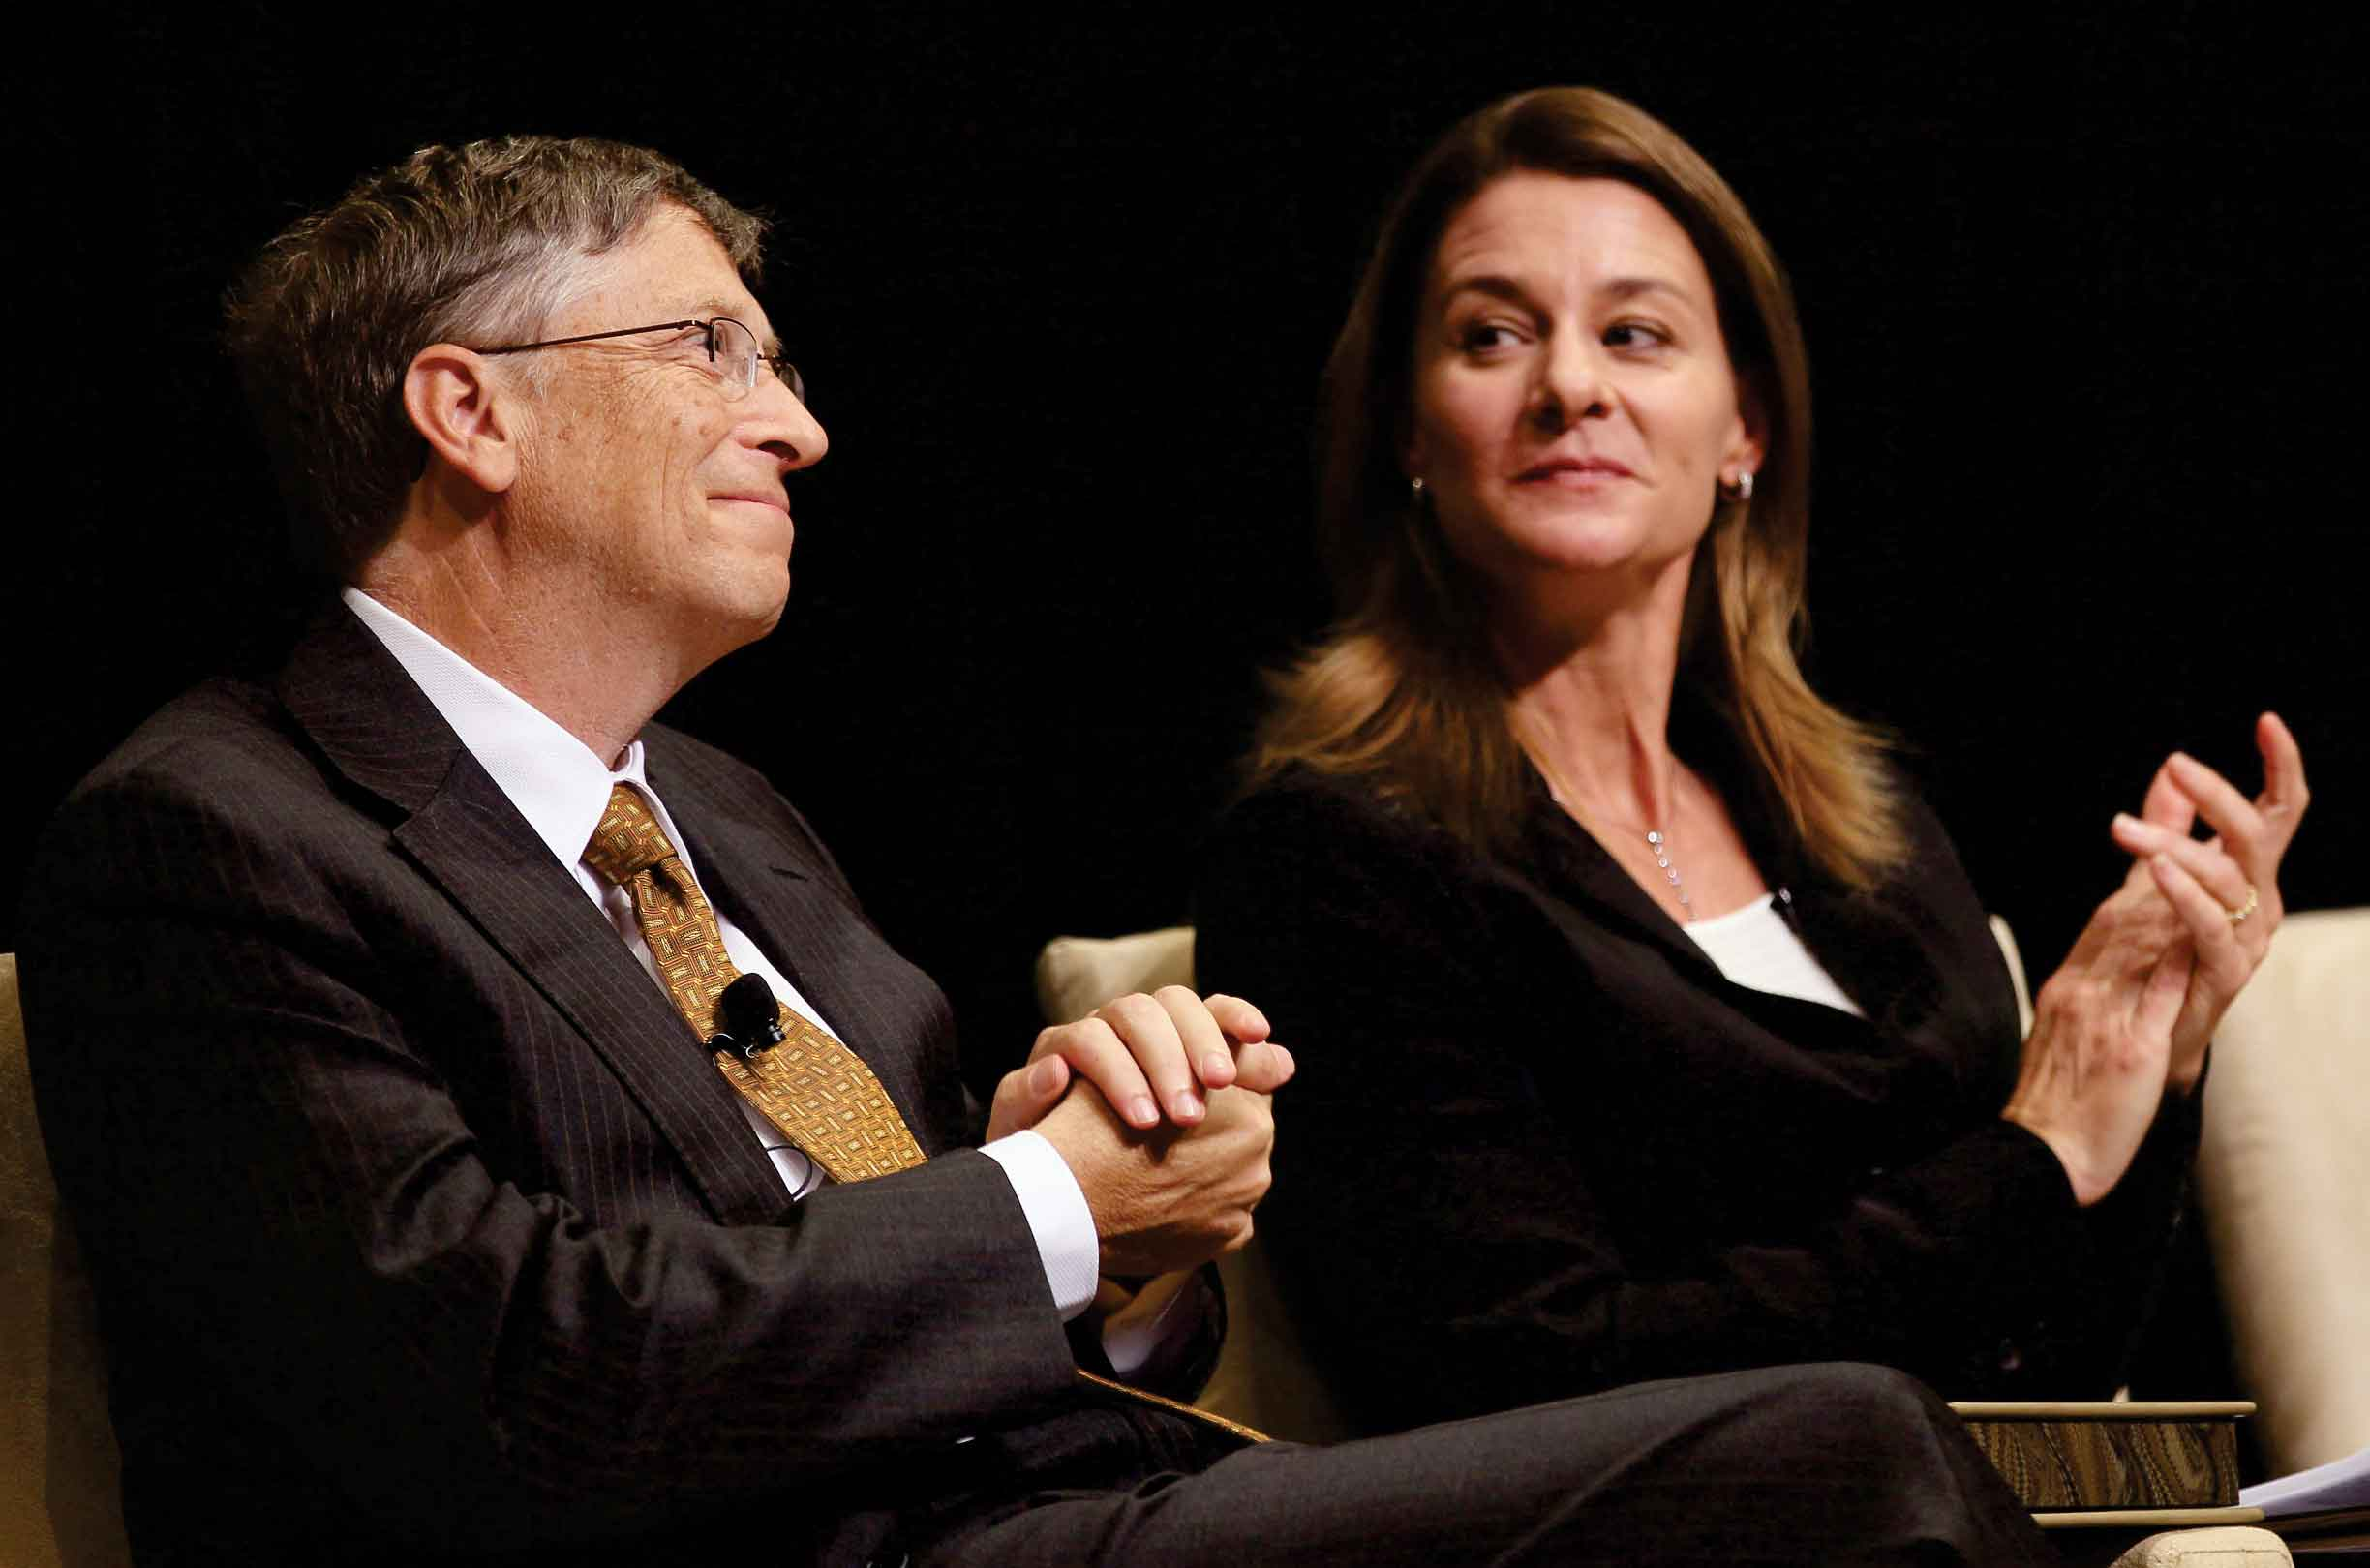 Bill with his wife Melinda Gates